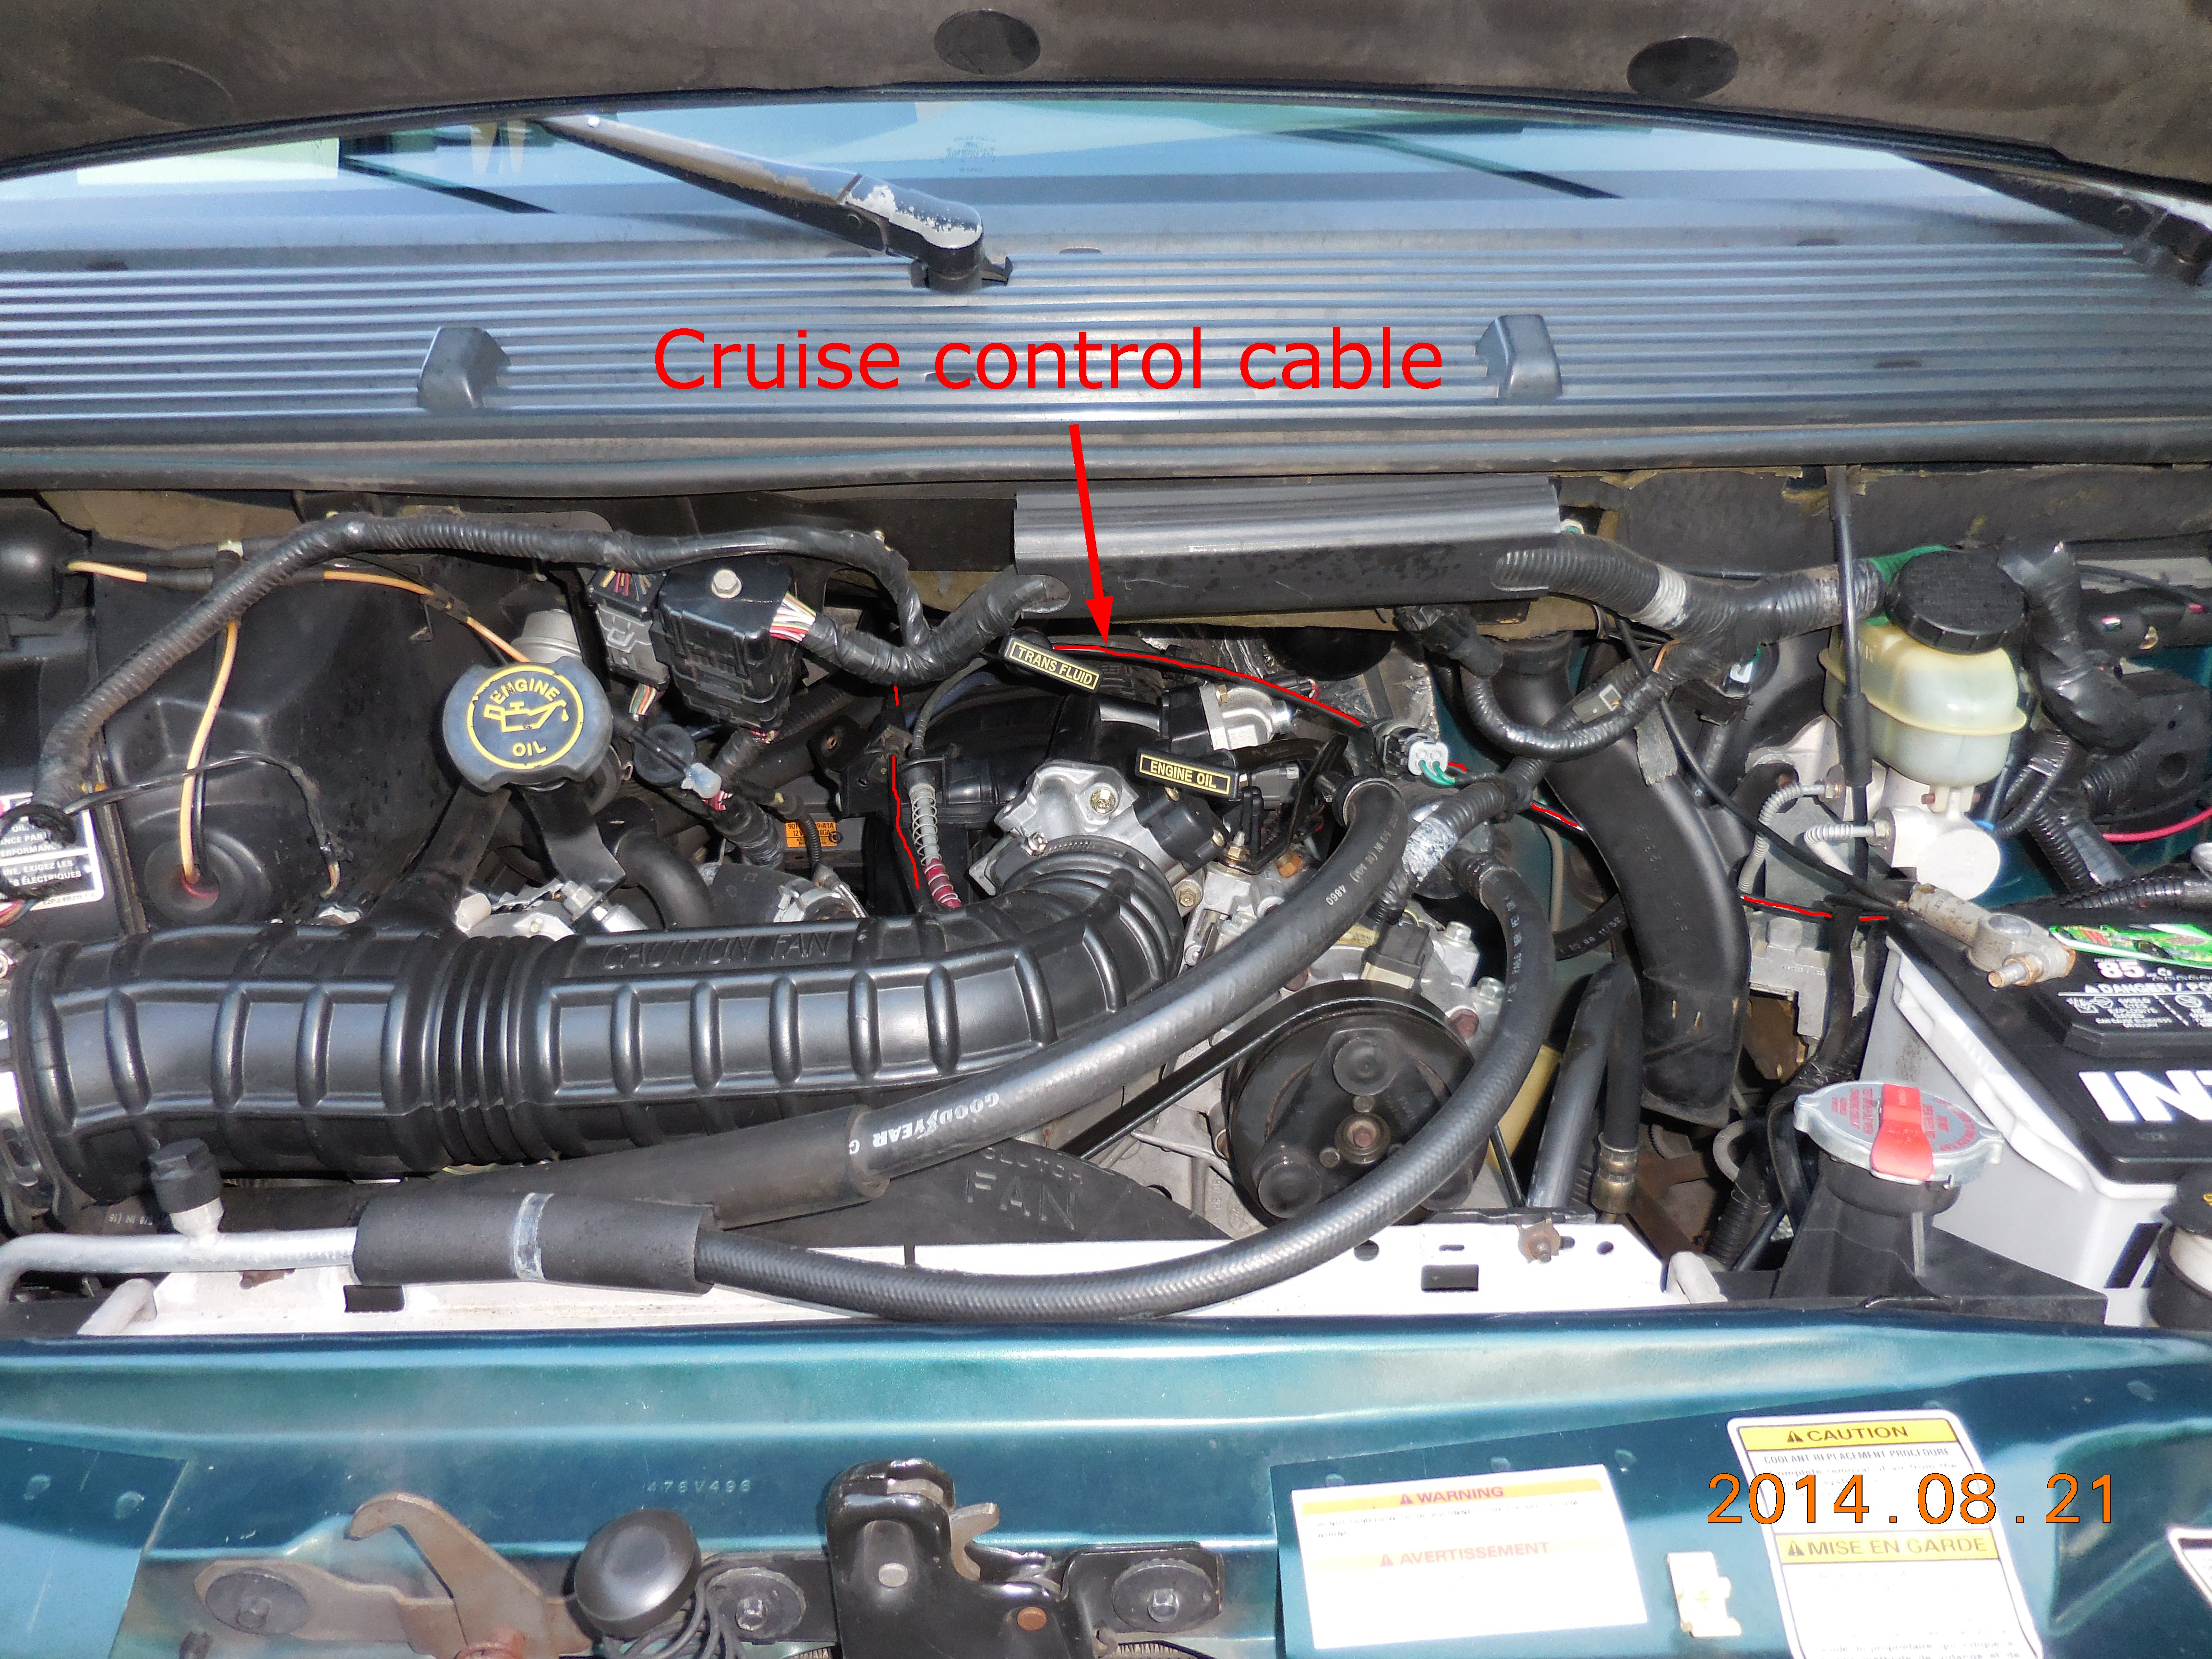 1994 Ford Cruise Control Diagram 32 Wiring Images Honda Civic Cable 06b 1986 Thunderbird Great Design Of